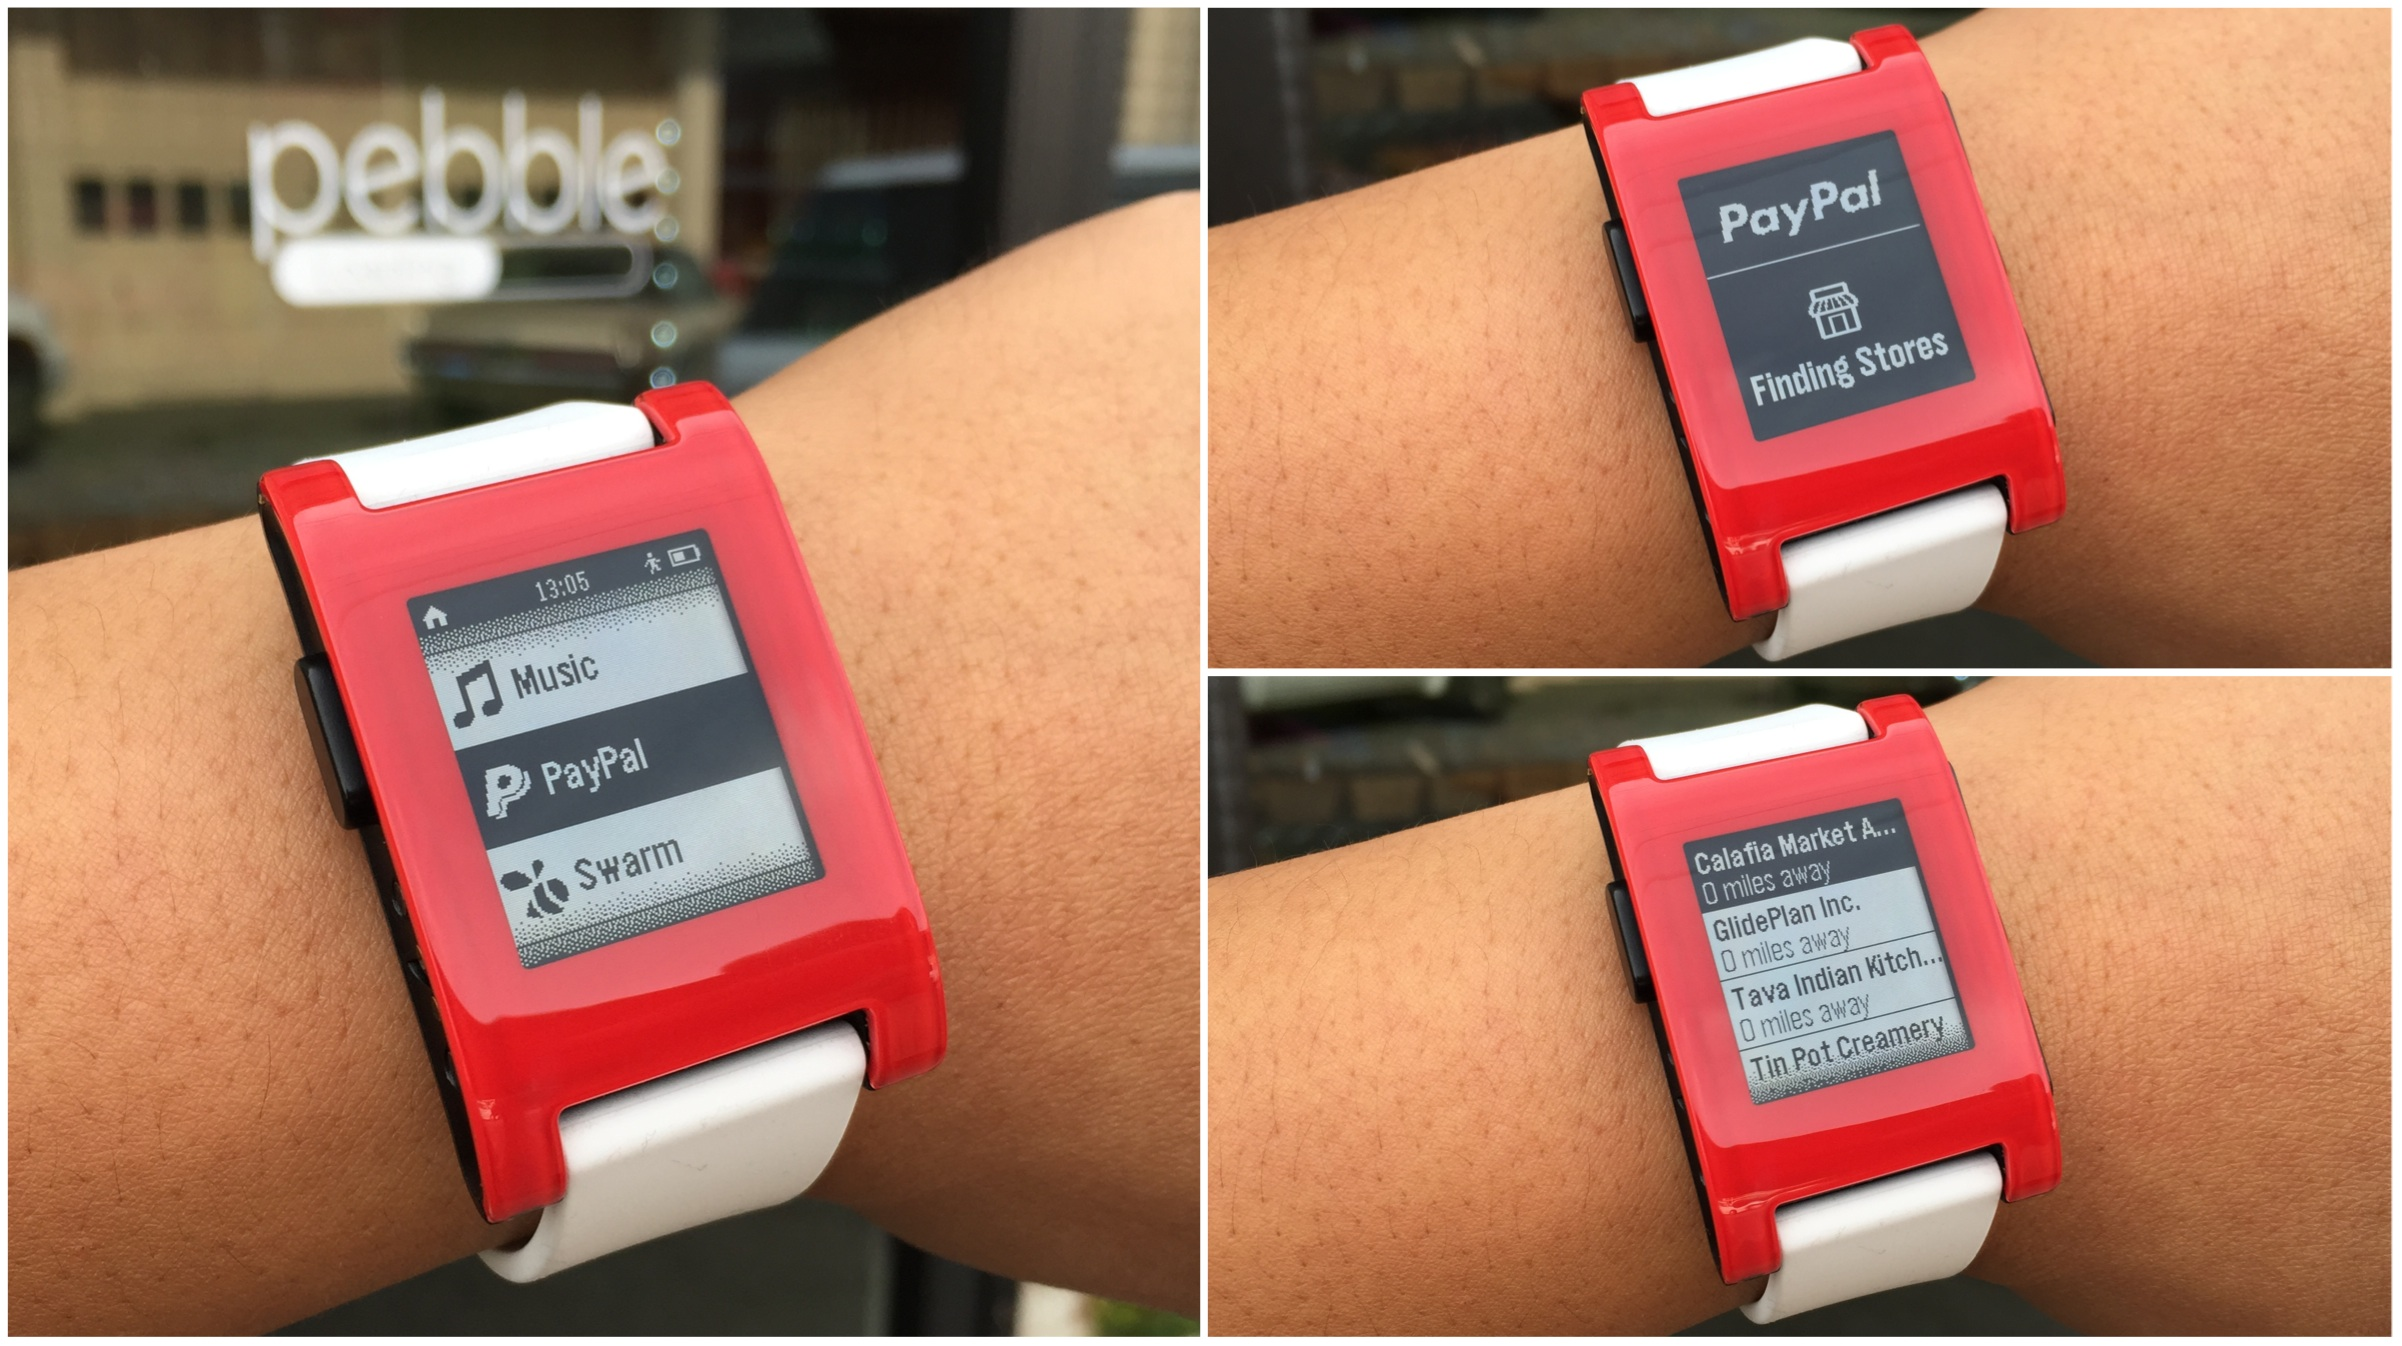 Pebble and PayPal Join Forces for Wearable Payments